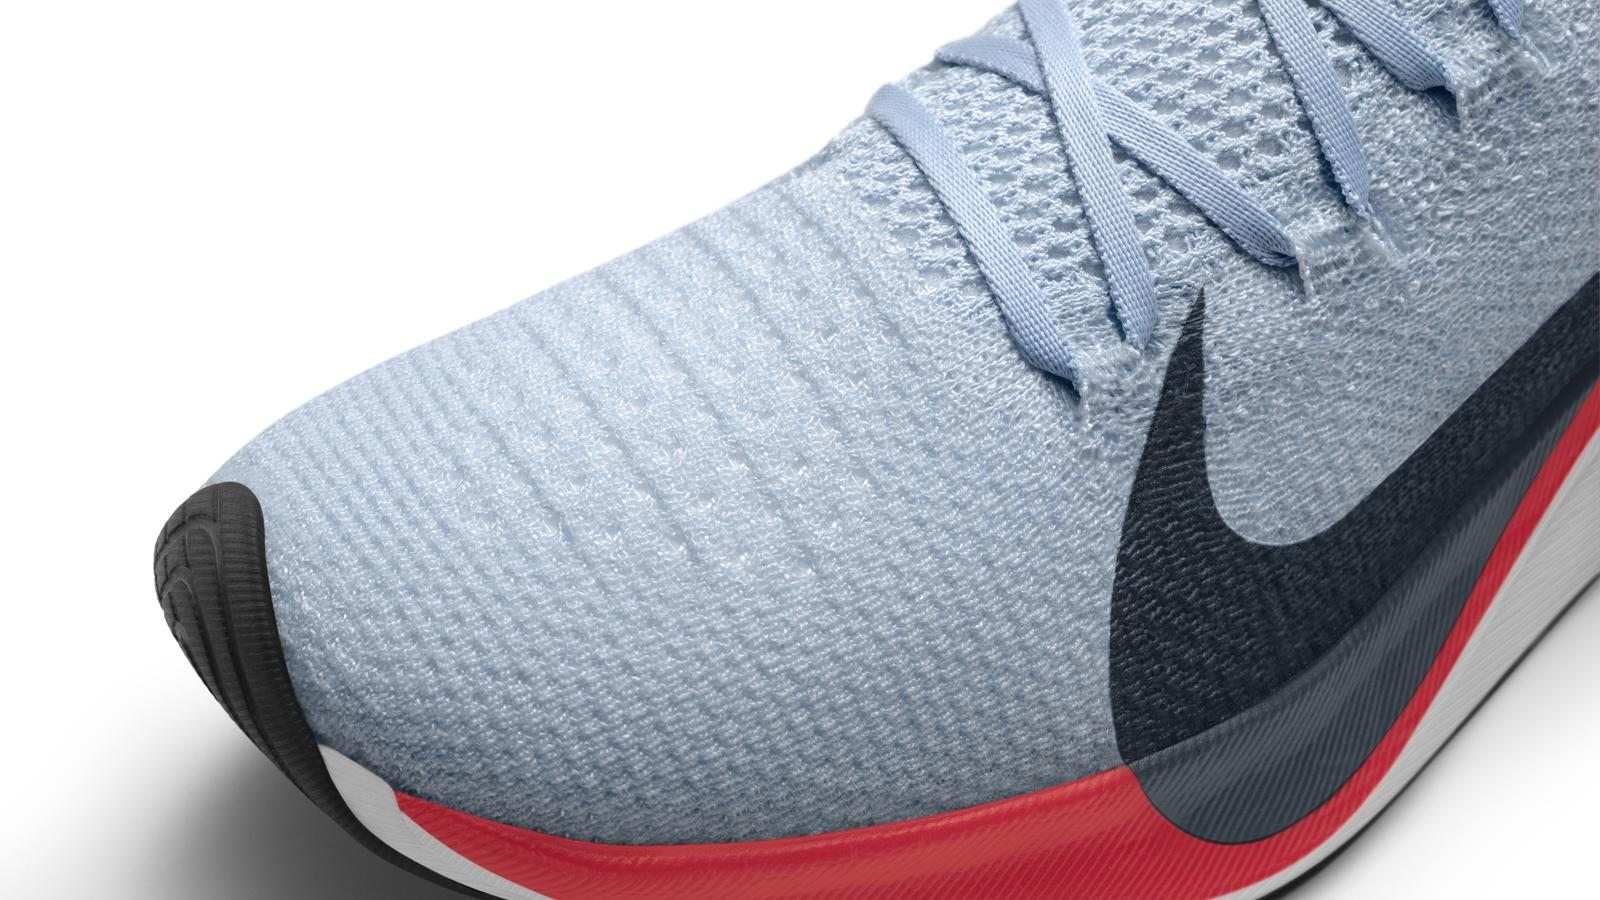 nike shoes with carbon fiber plate